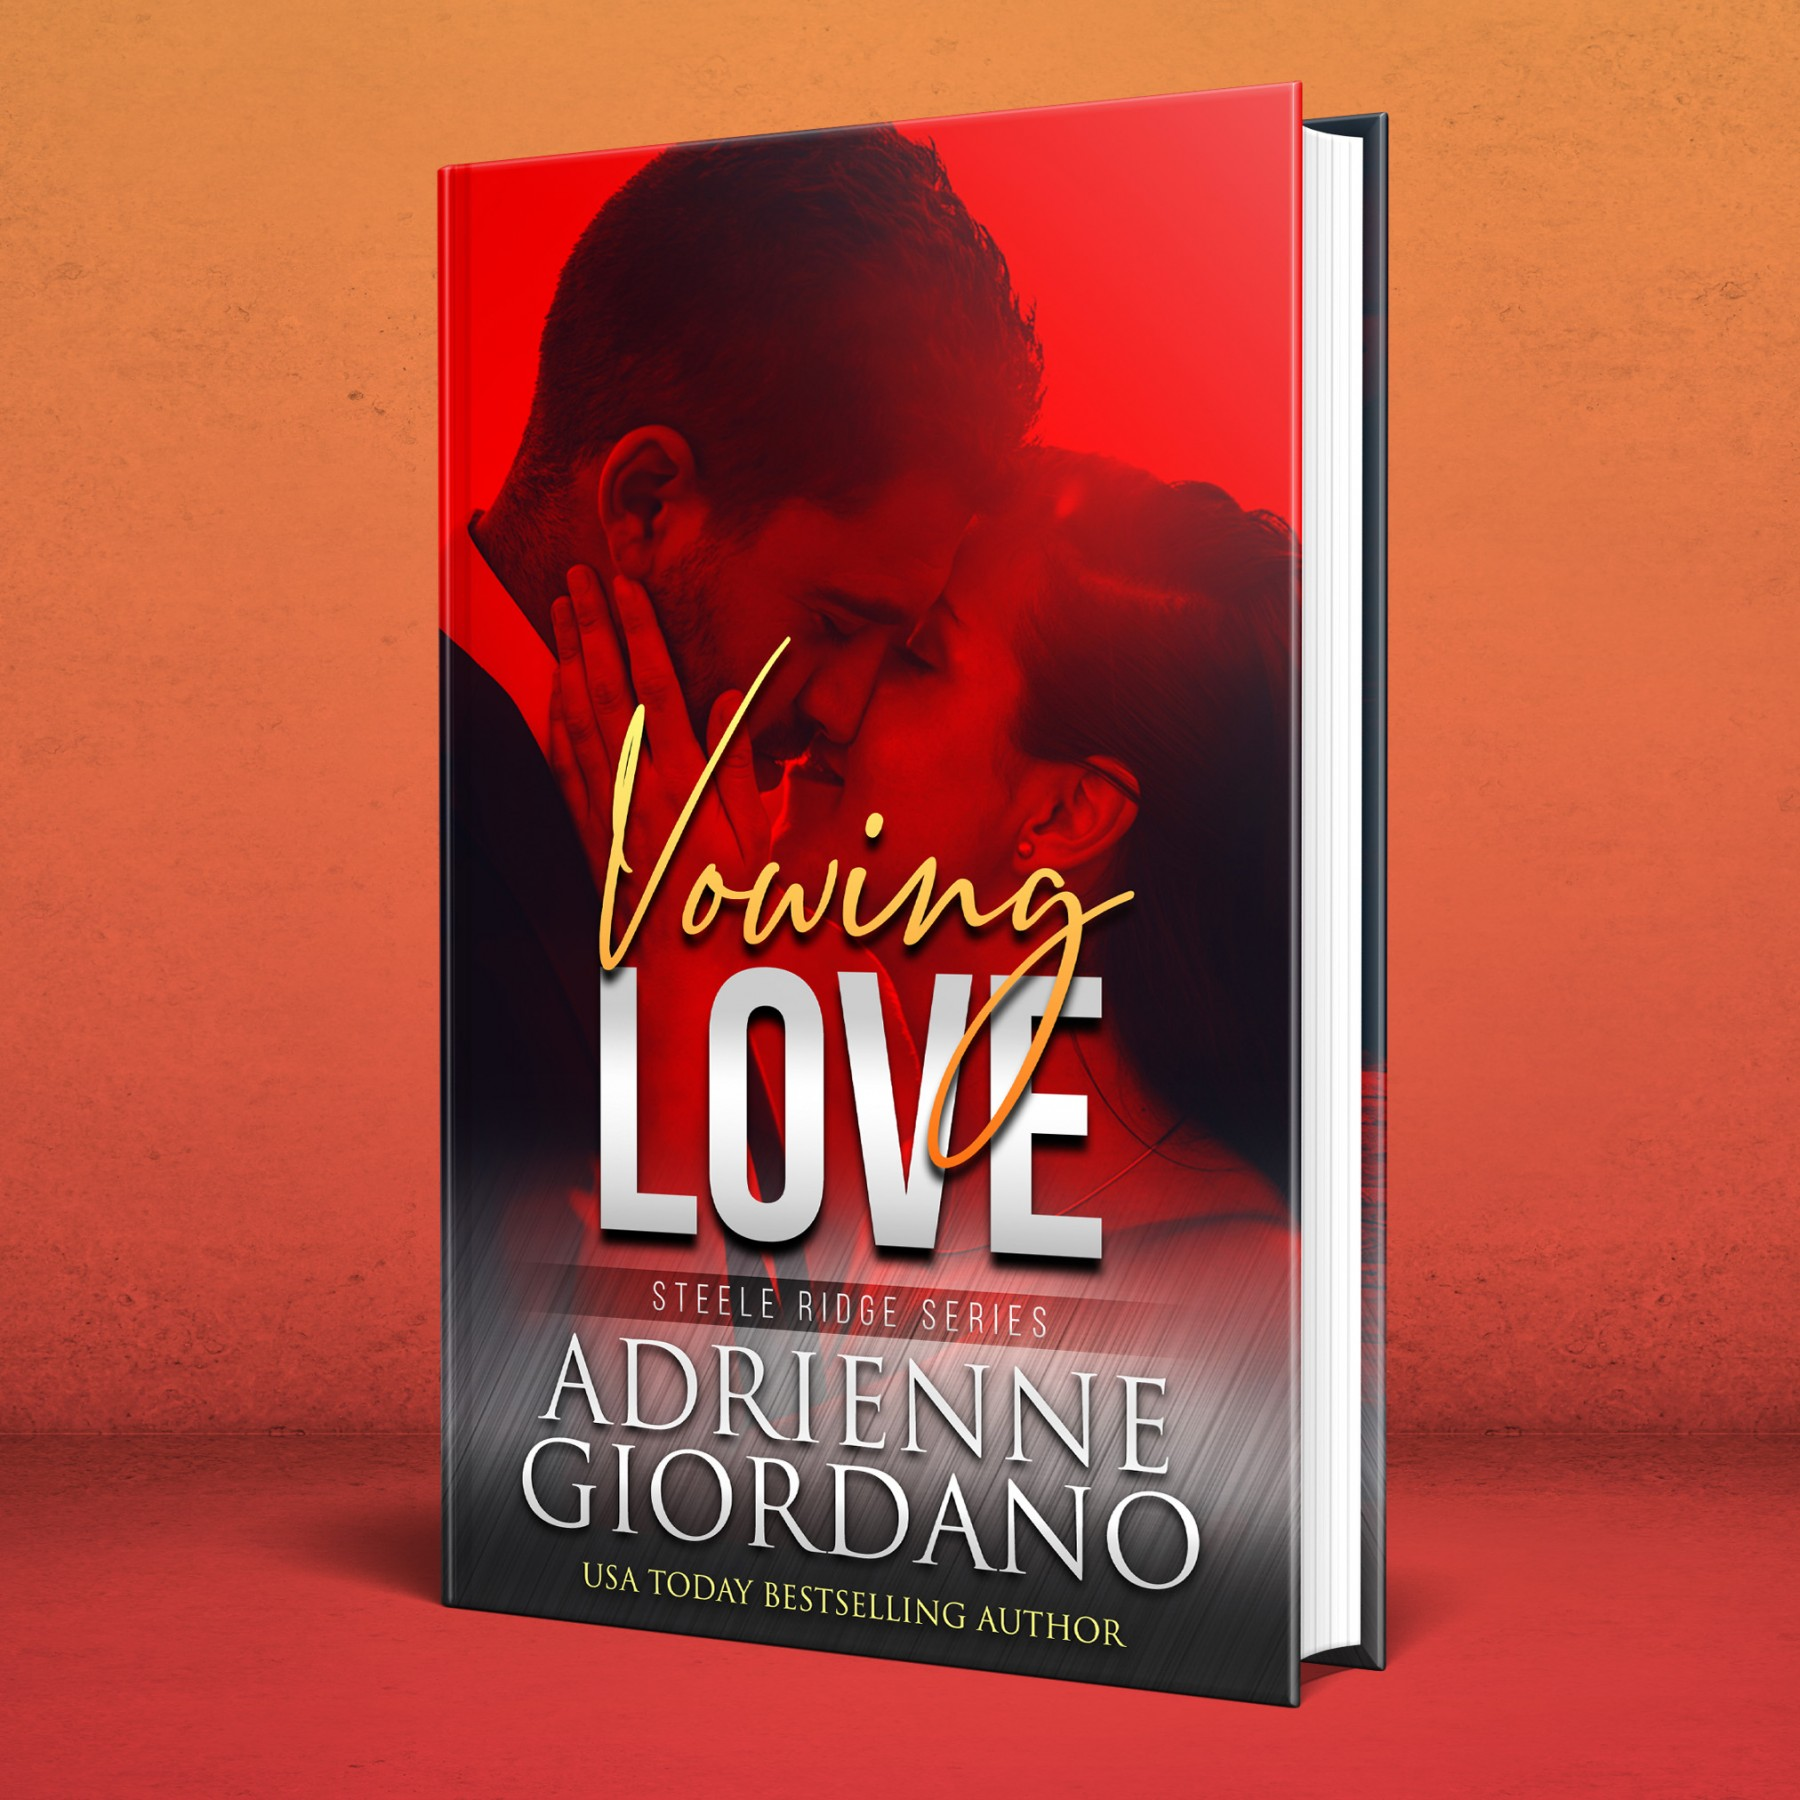 Adrienne Giordano - USA Today Best Selling Author